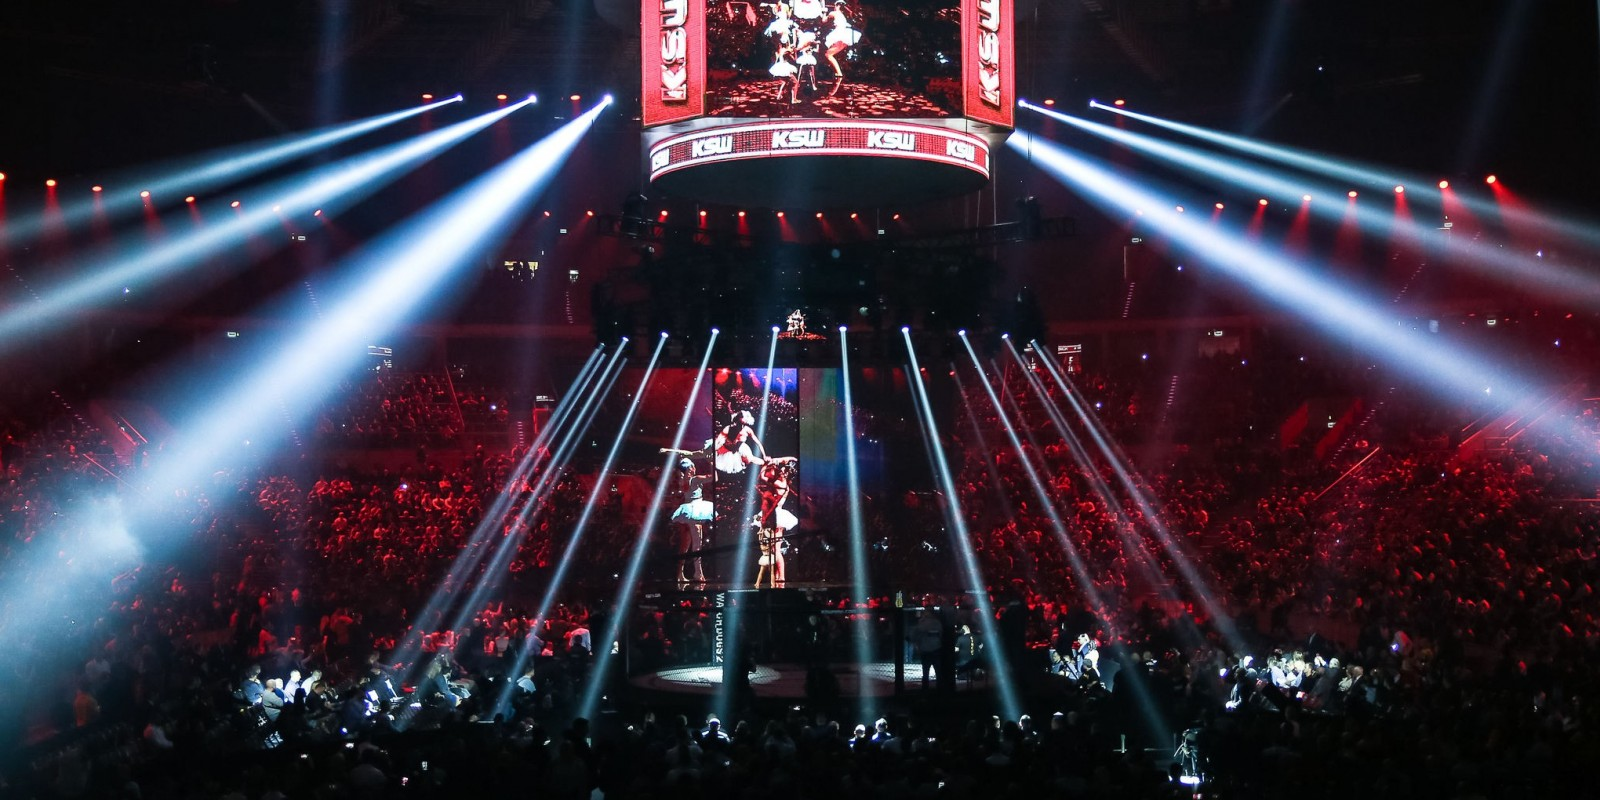 KSW MMA events in Poland - general ambient pictures from 2016 events